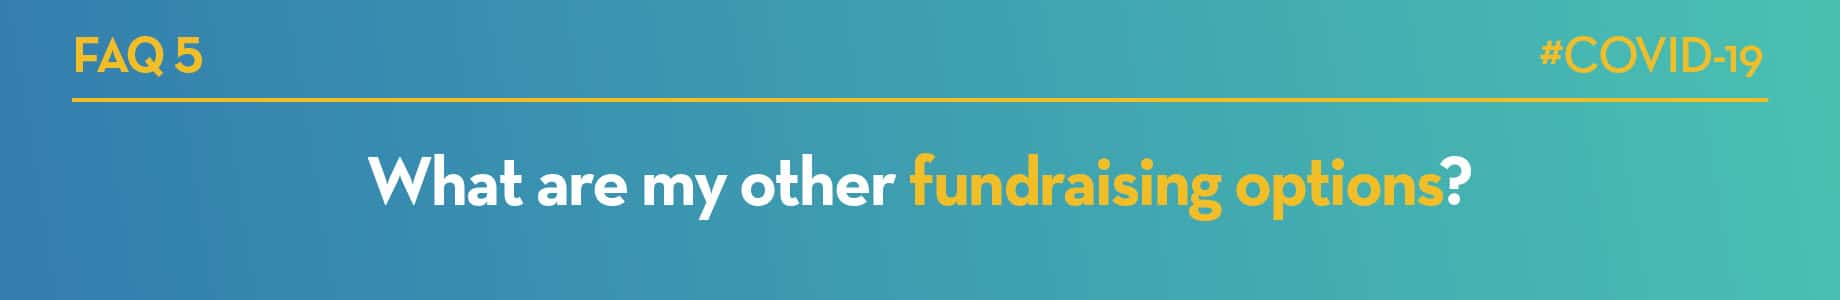 What are my other fundraising options?